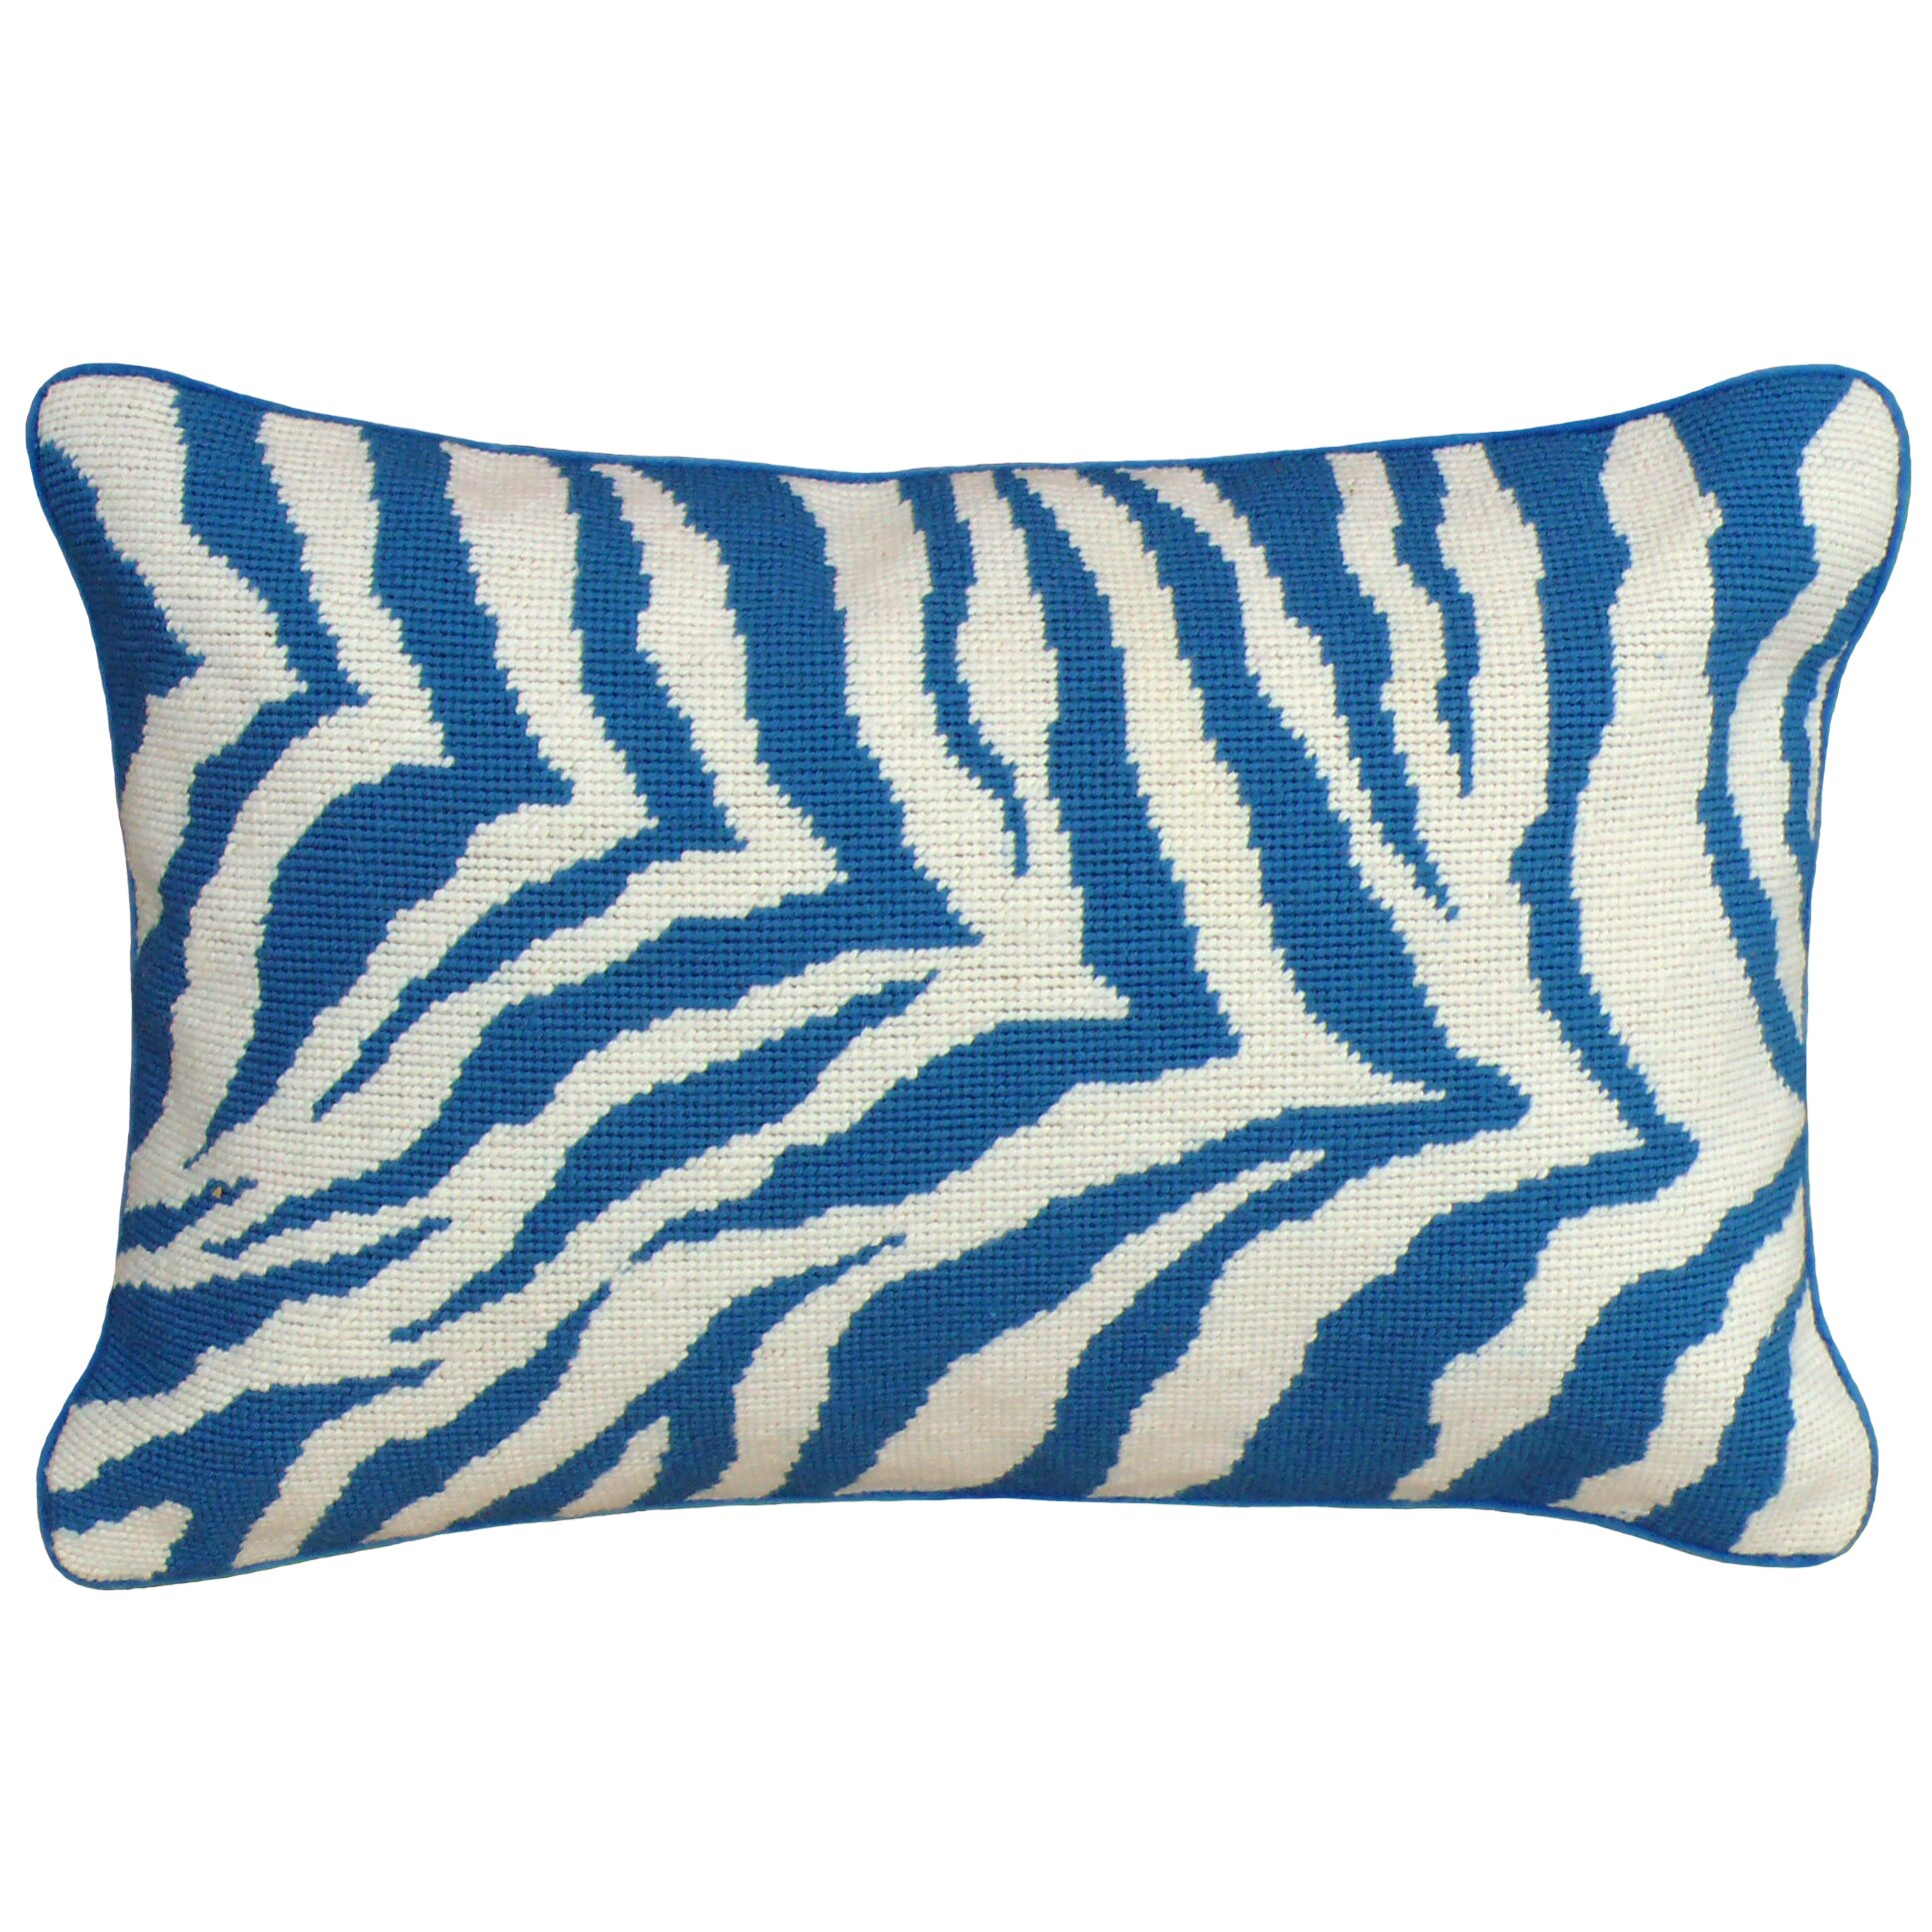 Animal Print Needlepoint Pillows : 123 Creations Zebra Needlepoint Wool Lumbar Pillow Wayfair